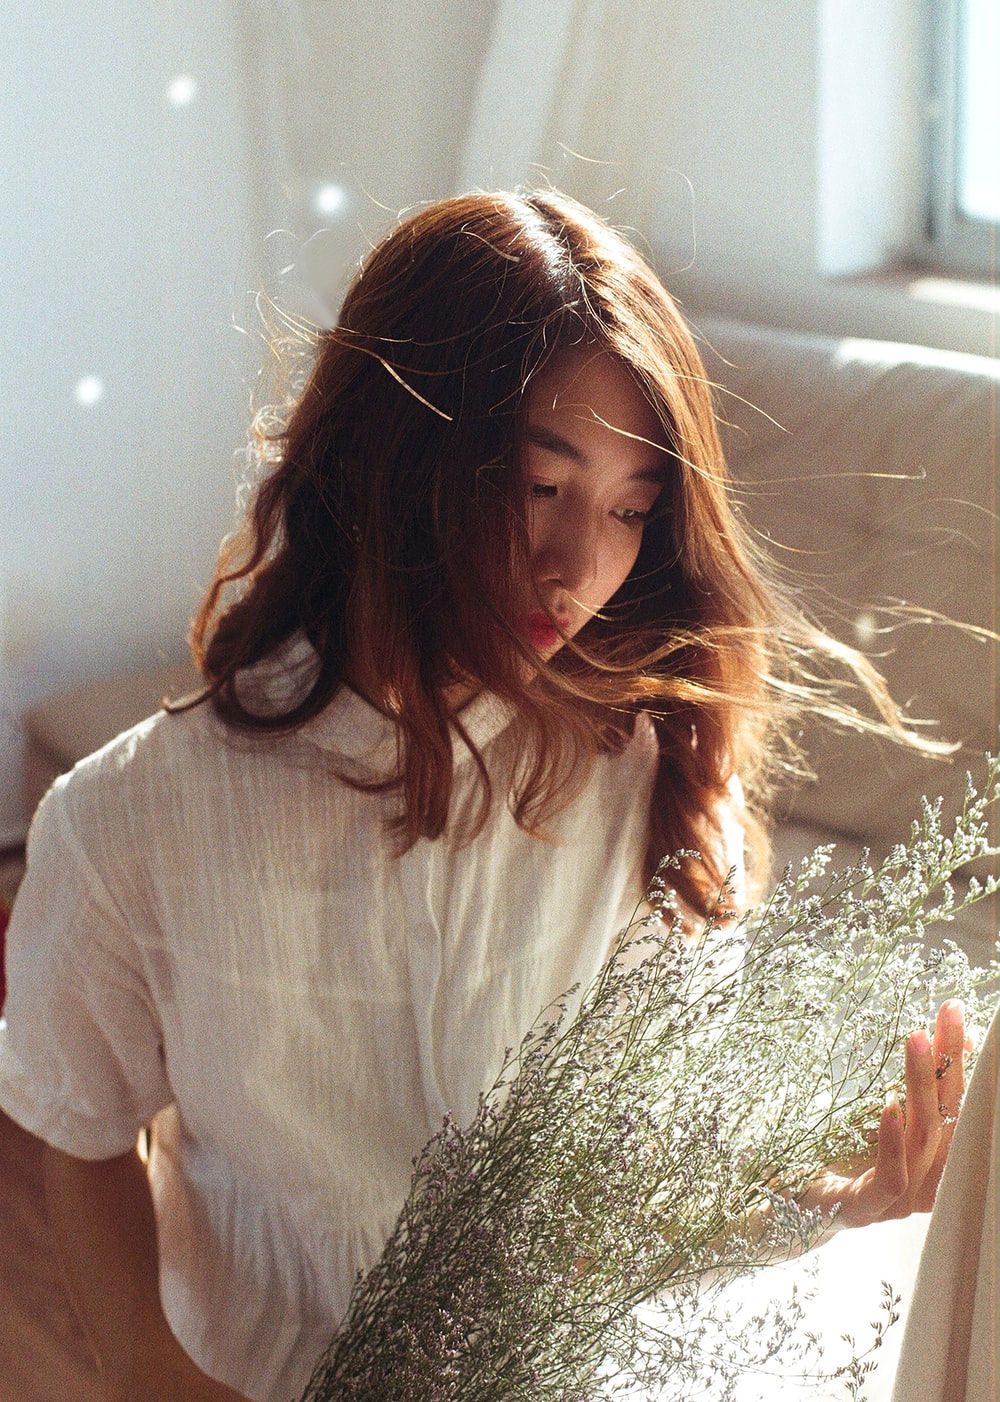 woman in white shirt holding green plant